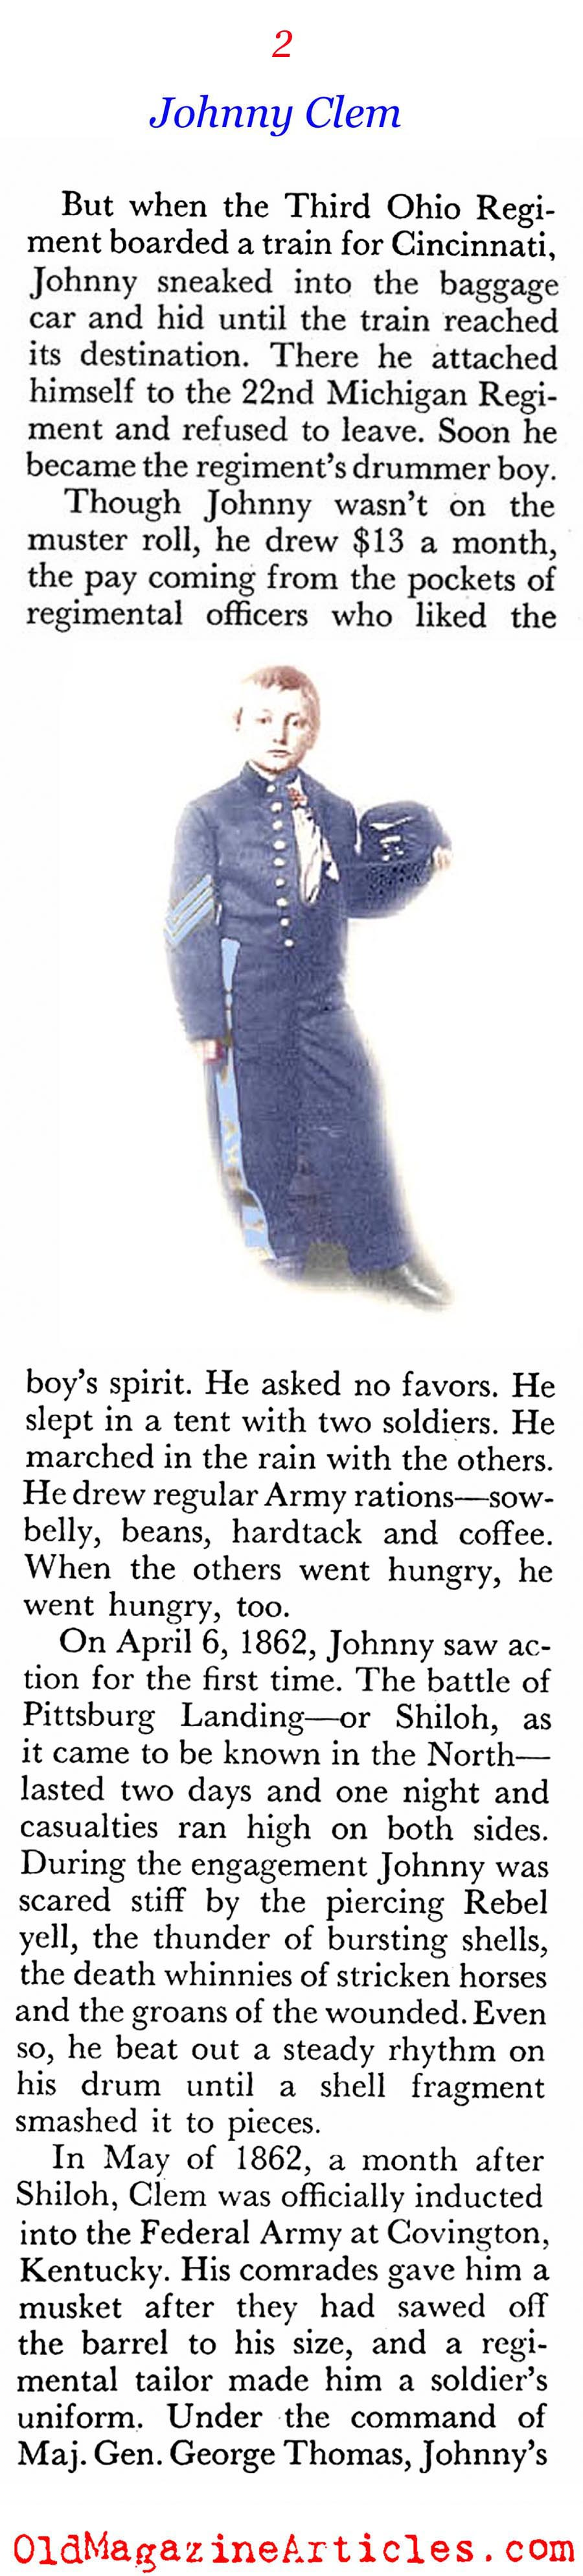 A Boy in the Union Army (Coronet Magazine, 1960)